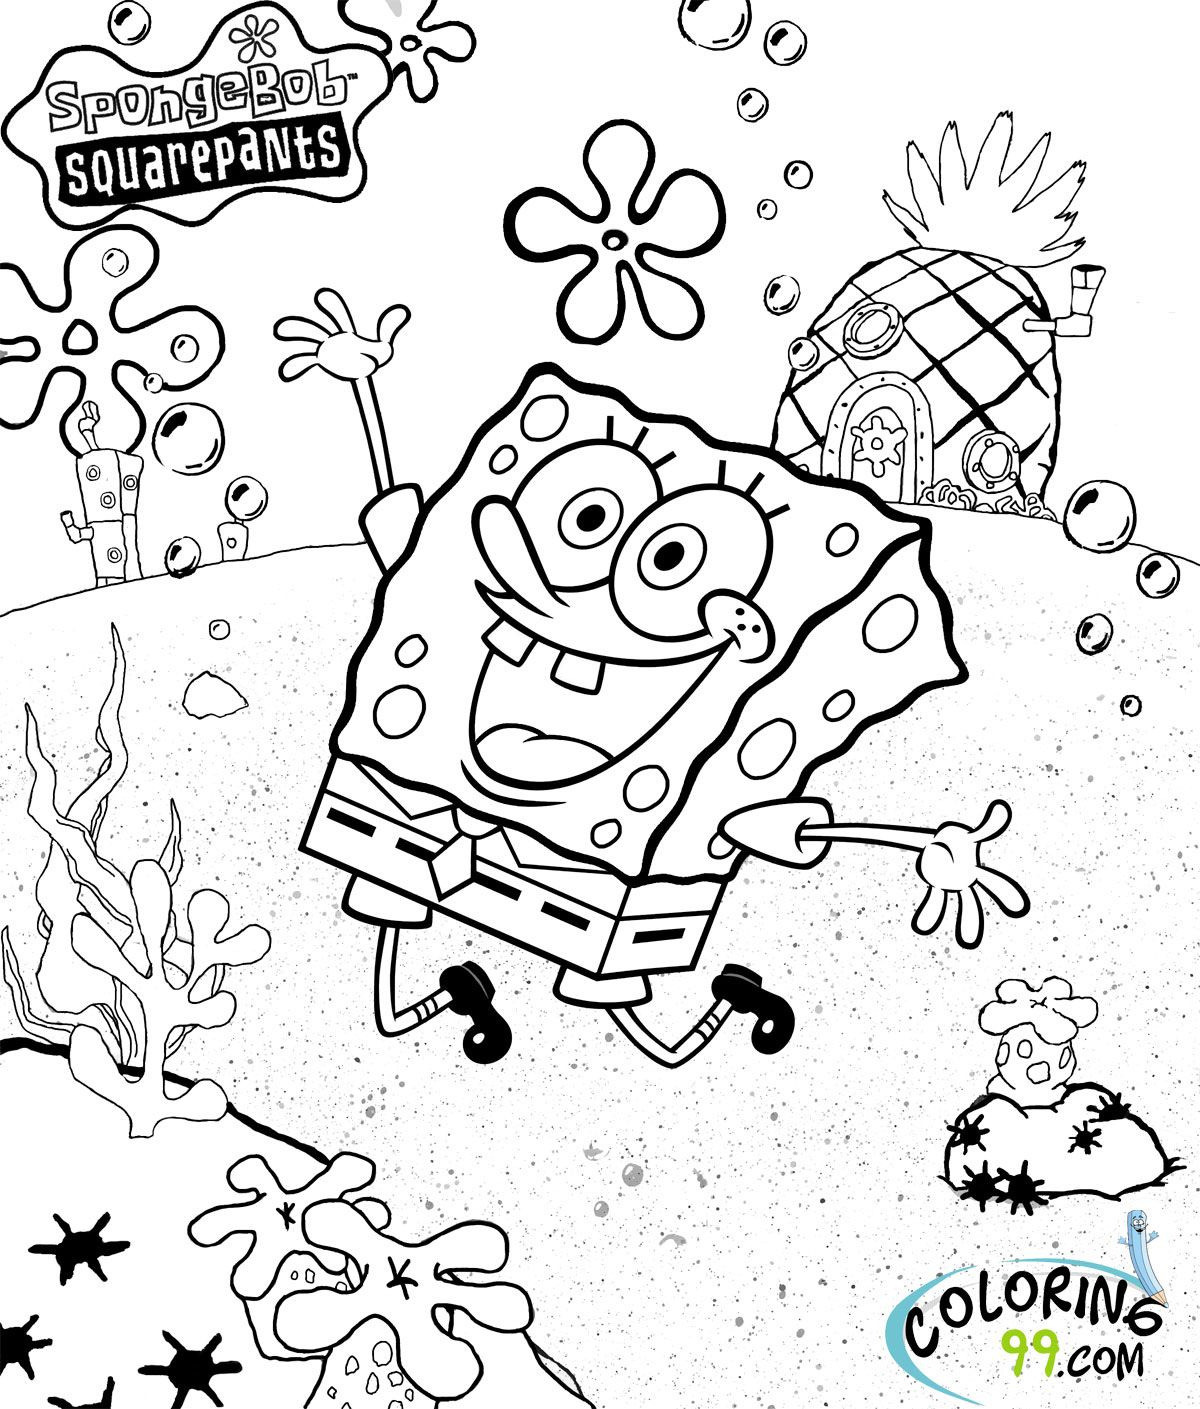 Spongebob Bilder Zum Ausmalen Frisch Spongebob Squarepants Coloring Pages Luxury Cool Coloring Page Luxus Stock